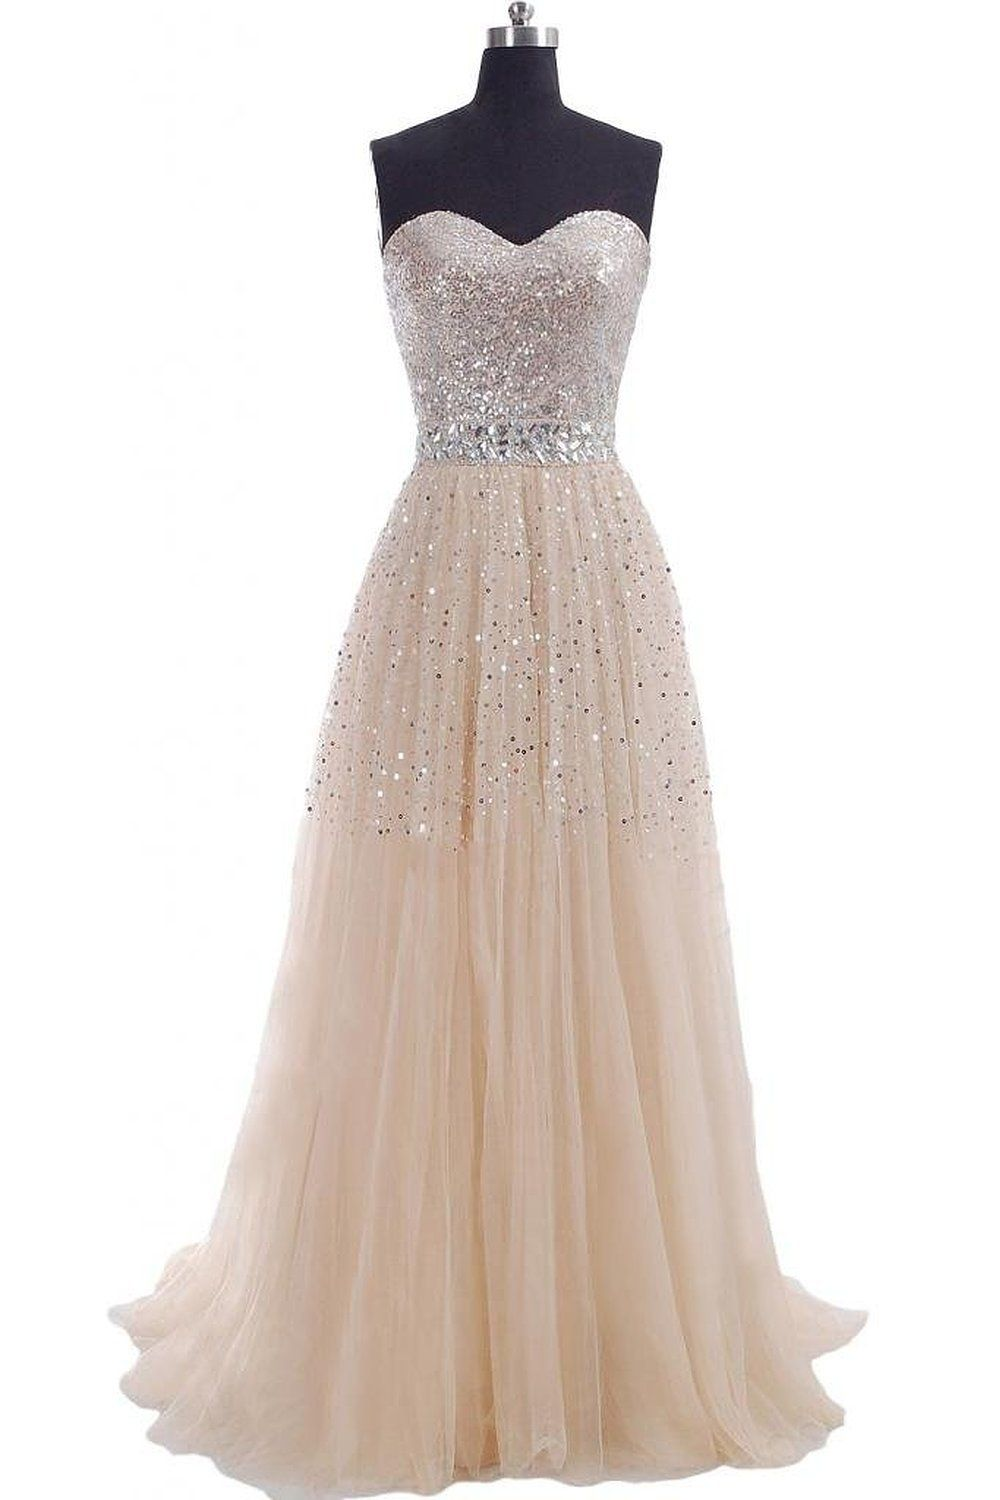 b6ee84114a5 Classic Prom Dress Tulle Party Dress Champagne prom Dress Long Evening  Dresses